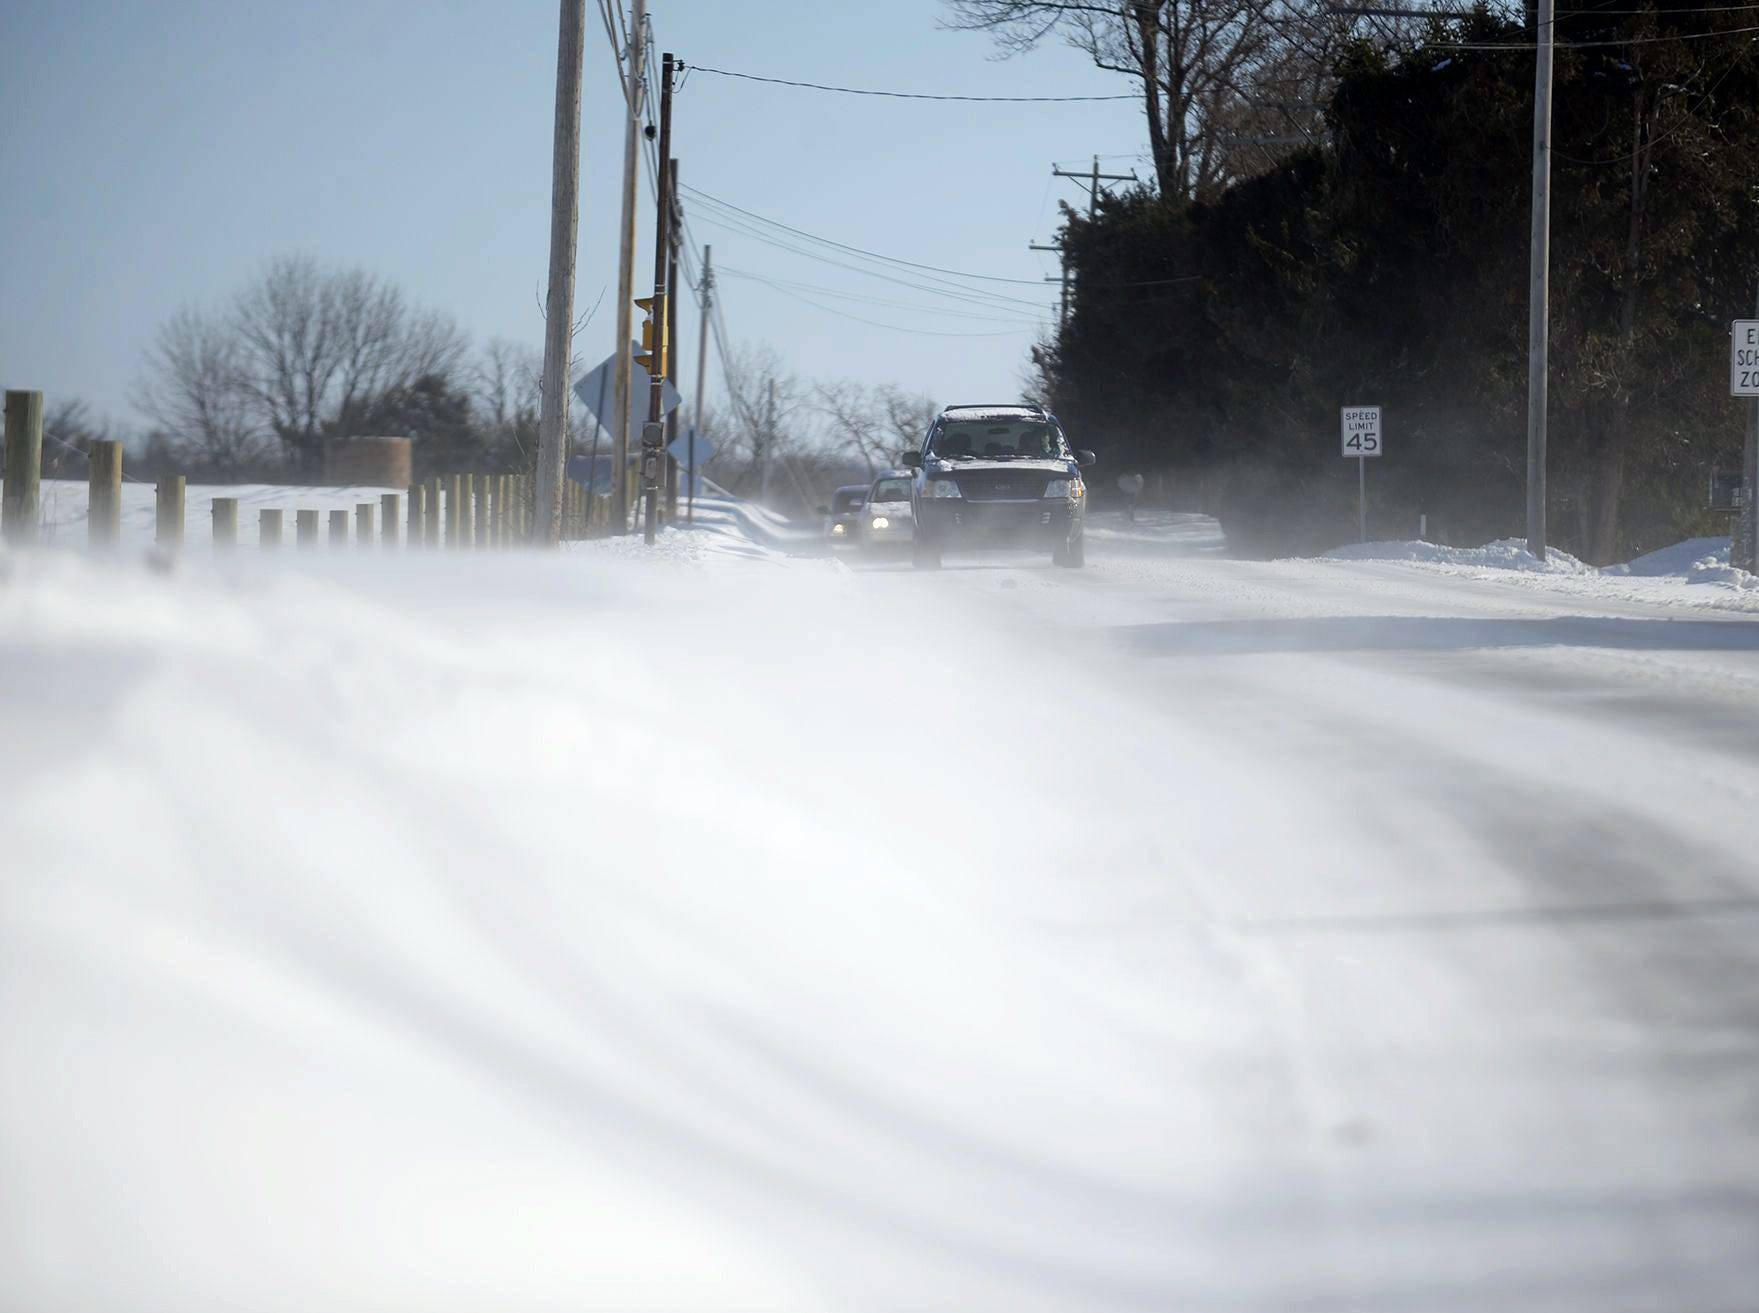 Snow drifts across Route 934 in North Annville Township  on Friday, Jan. 3, 2014. The Lebanon Valley was hit with a snow storm Jan.2-3 and on Jan. 3 cold temps and high winds remained.